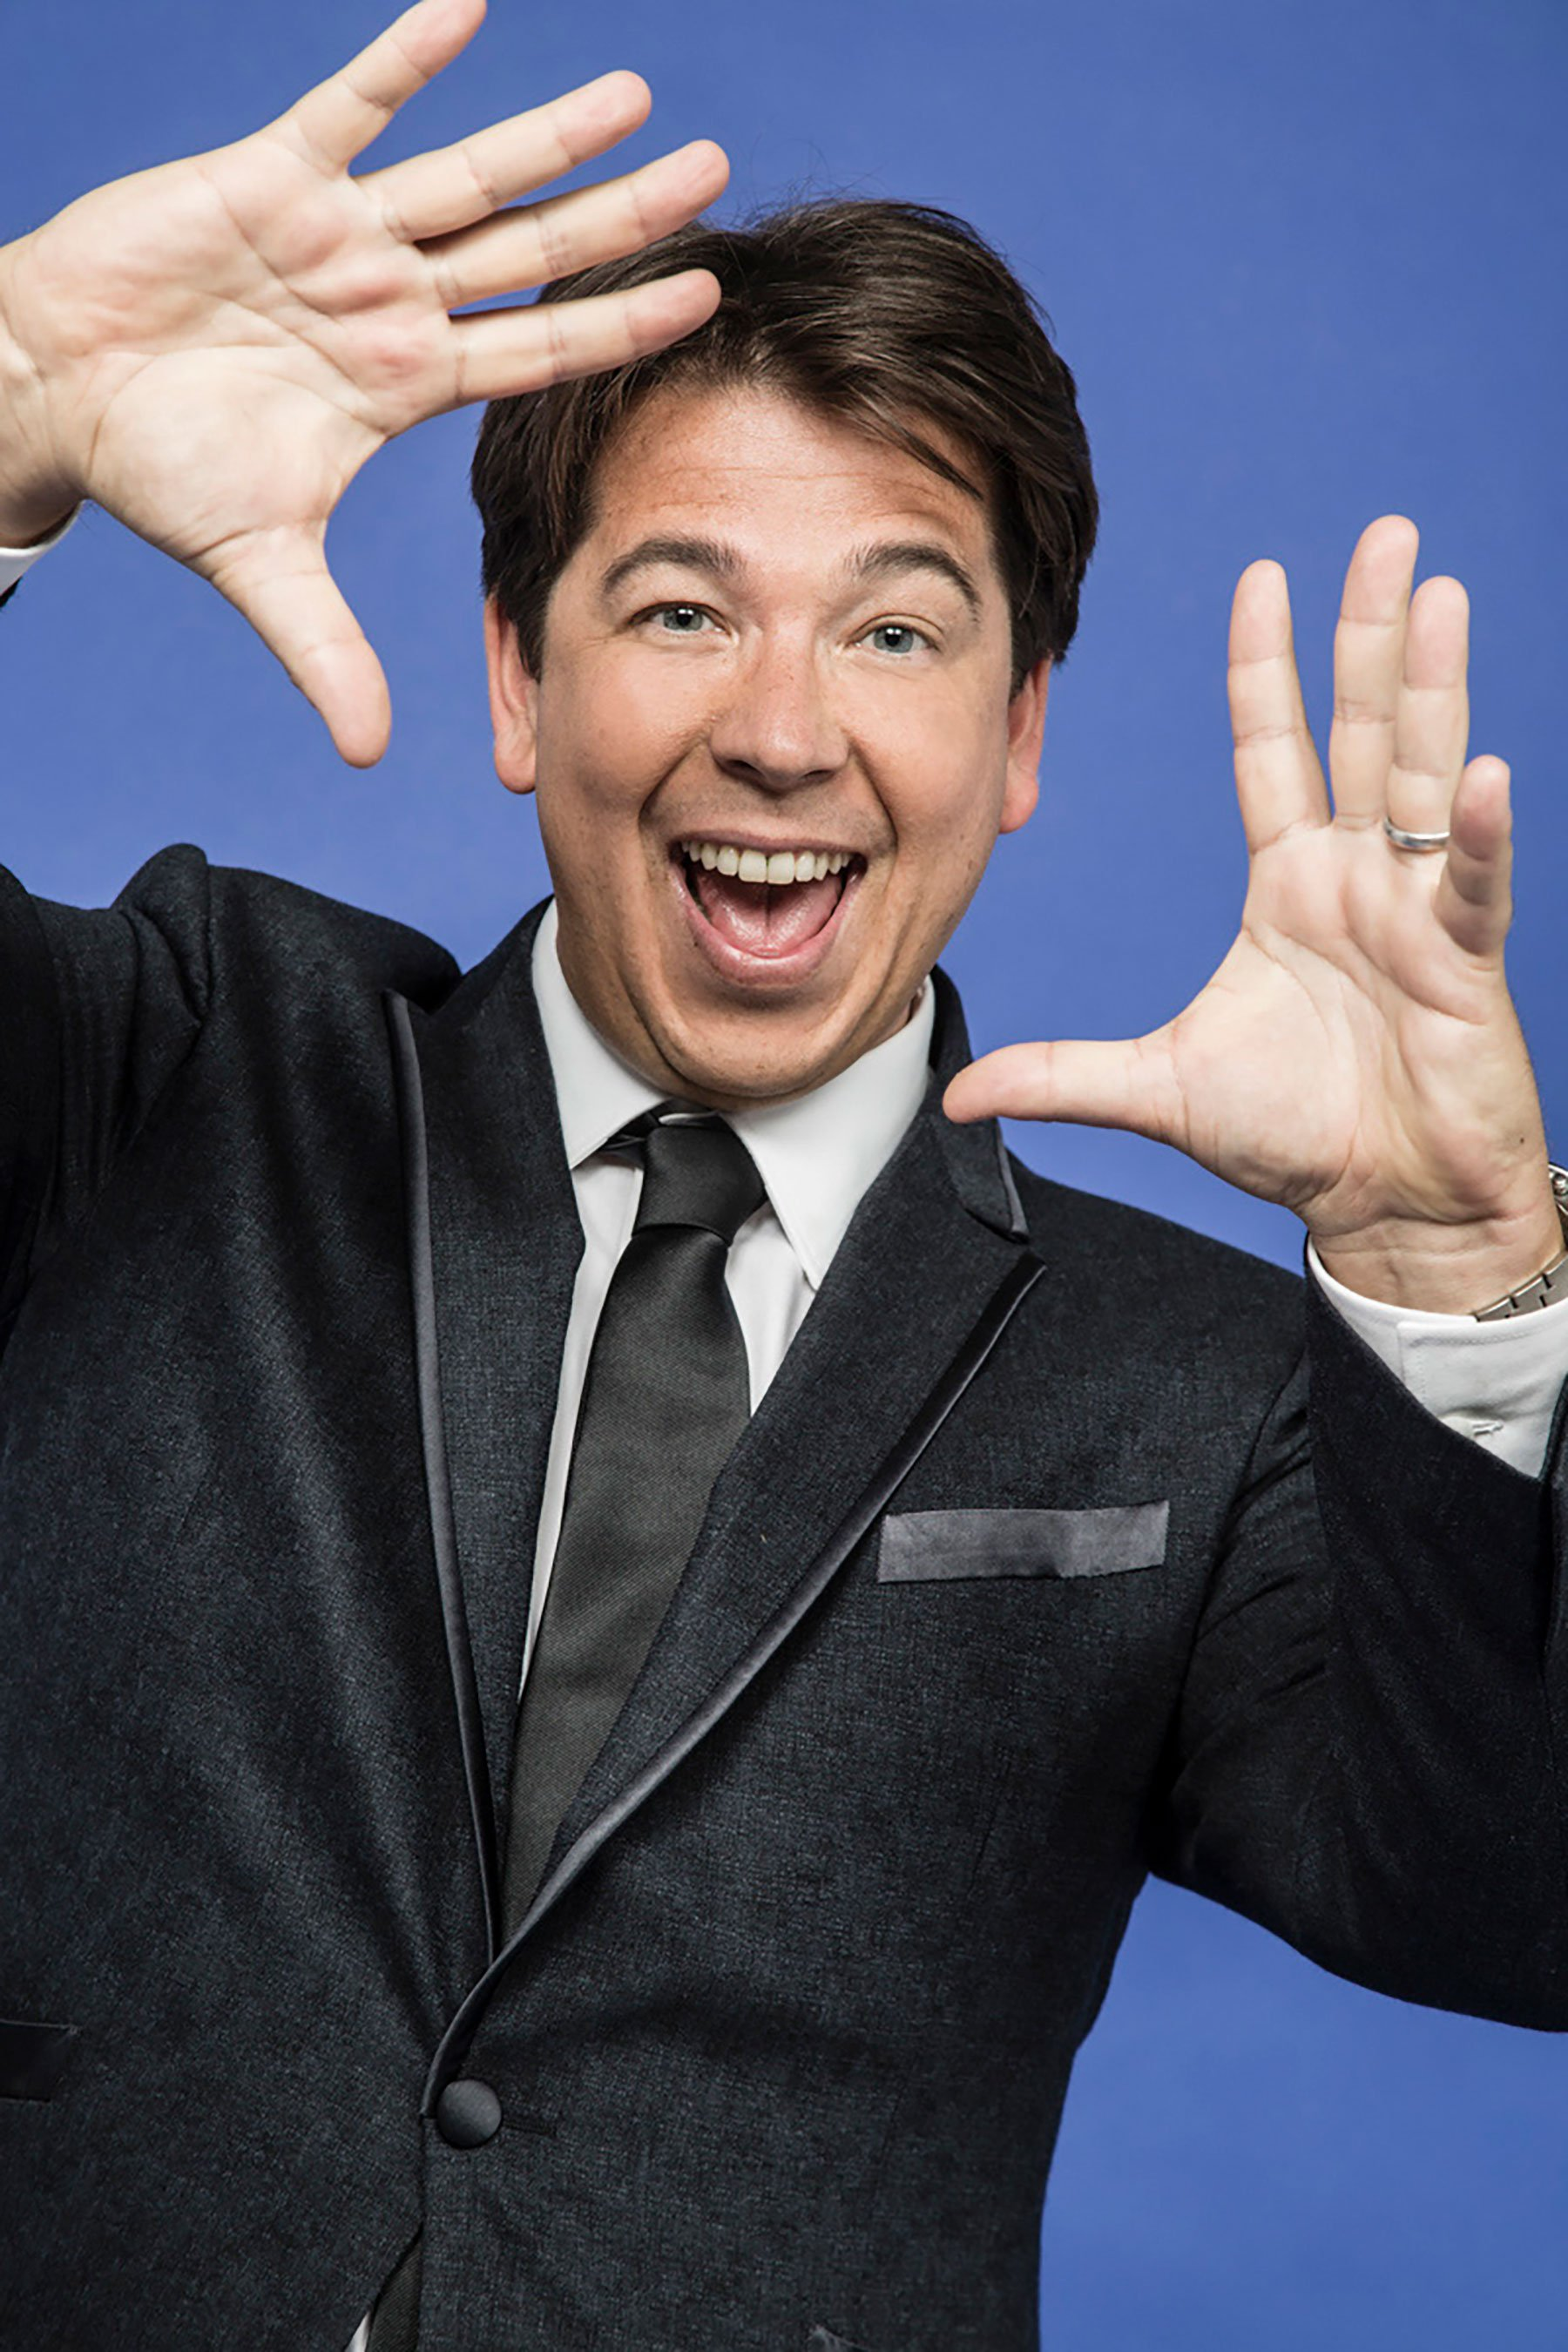 michael mcintyre - photo #6